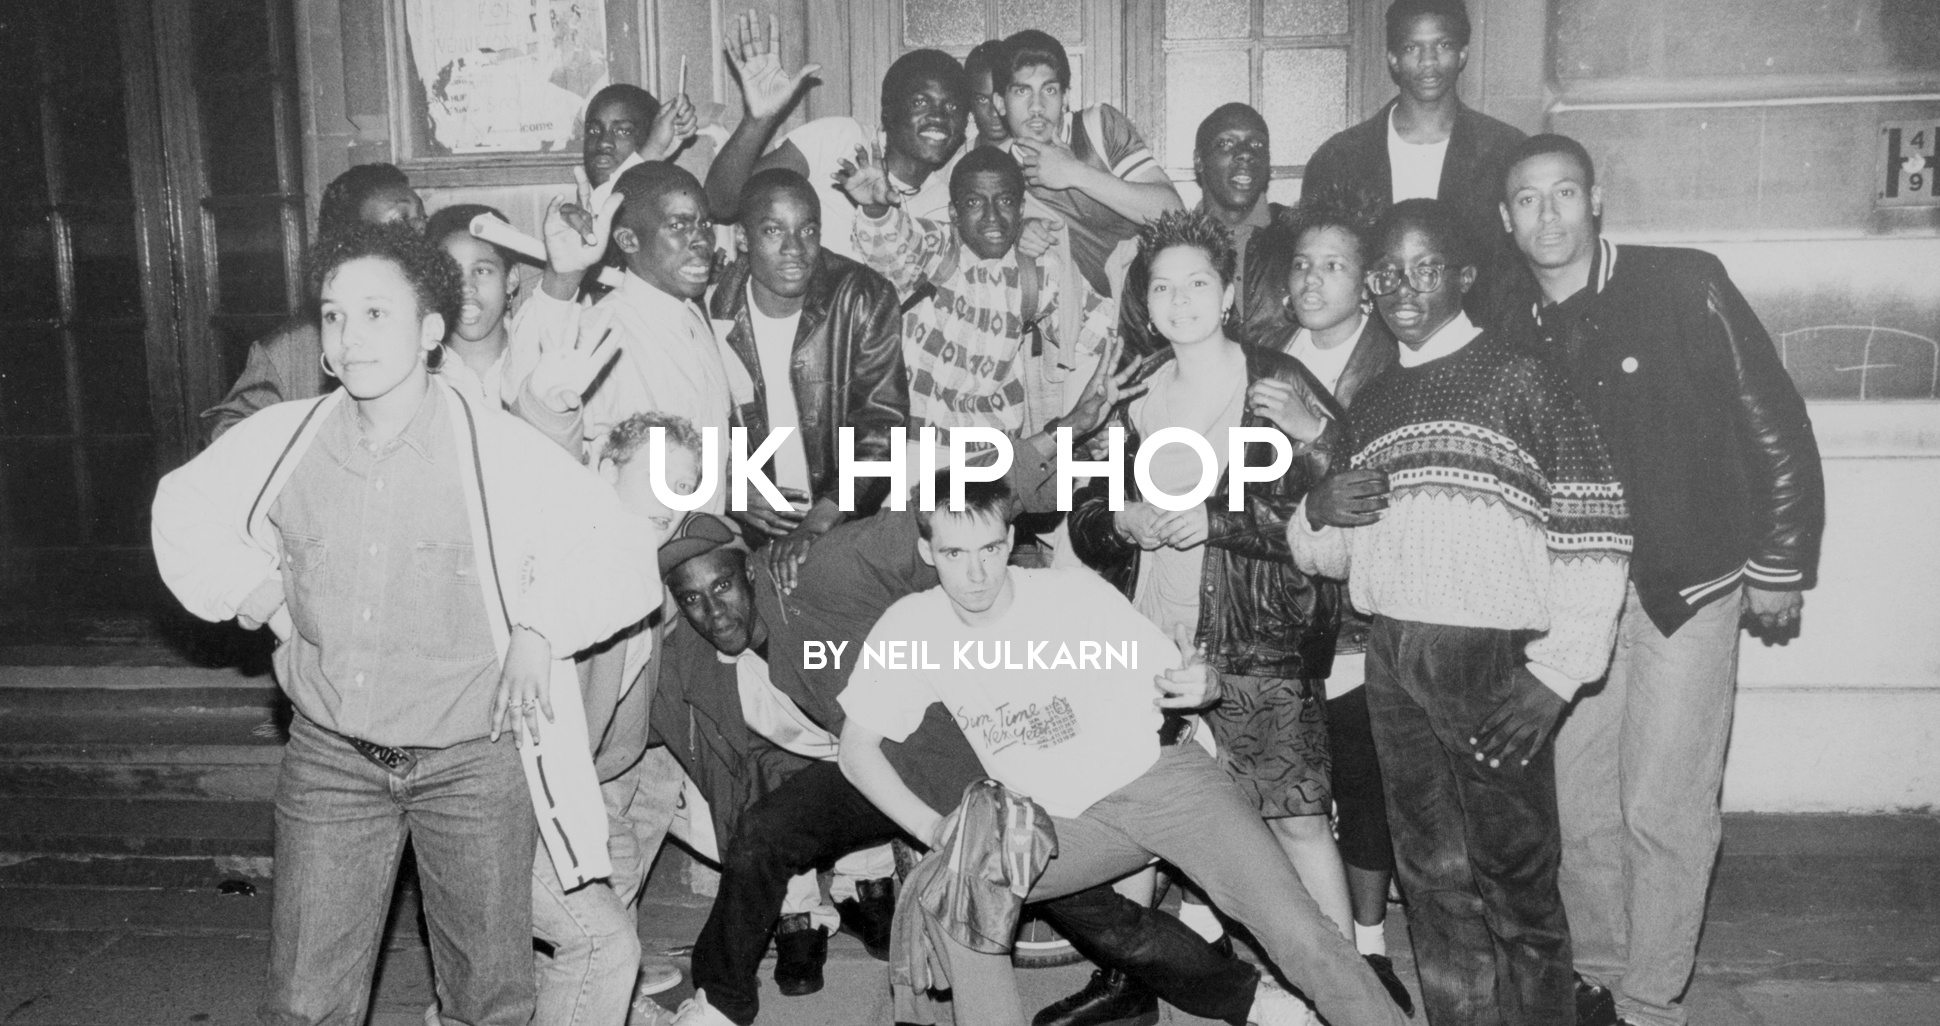 Group of UK hip hop fans and artists at a Youth Against Apartheid event, Camden, 1980s by Normski